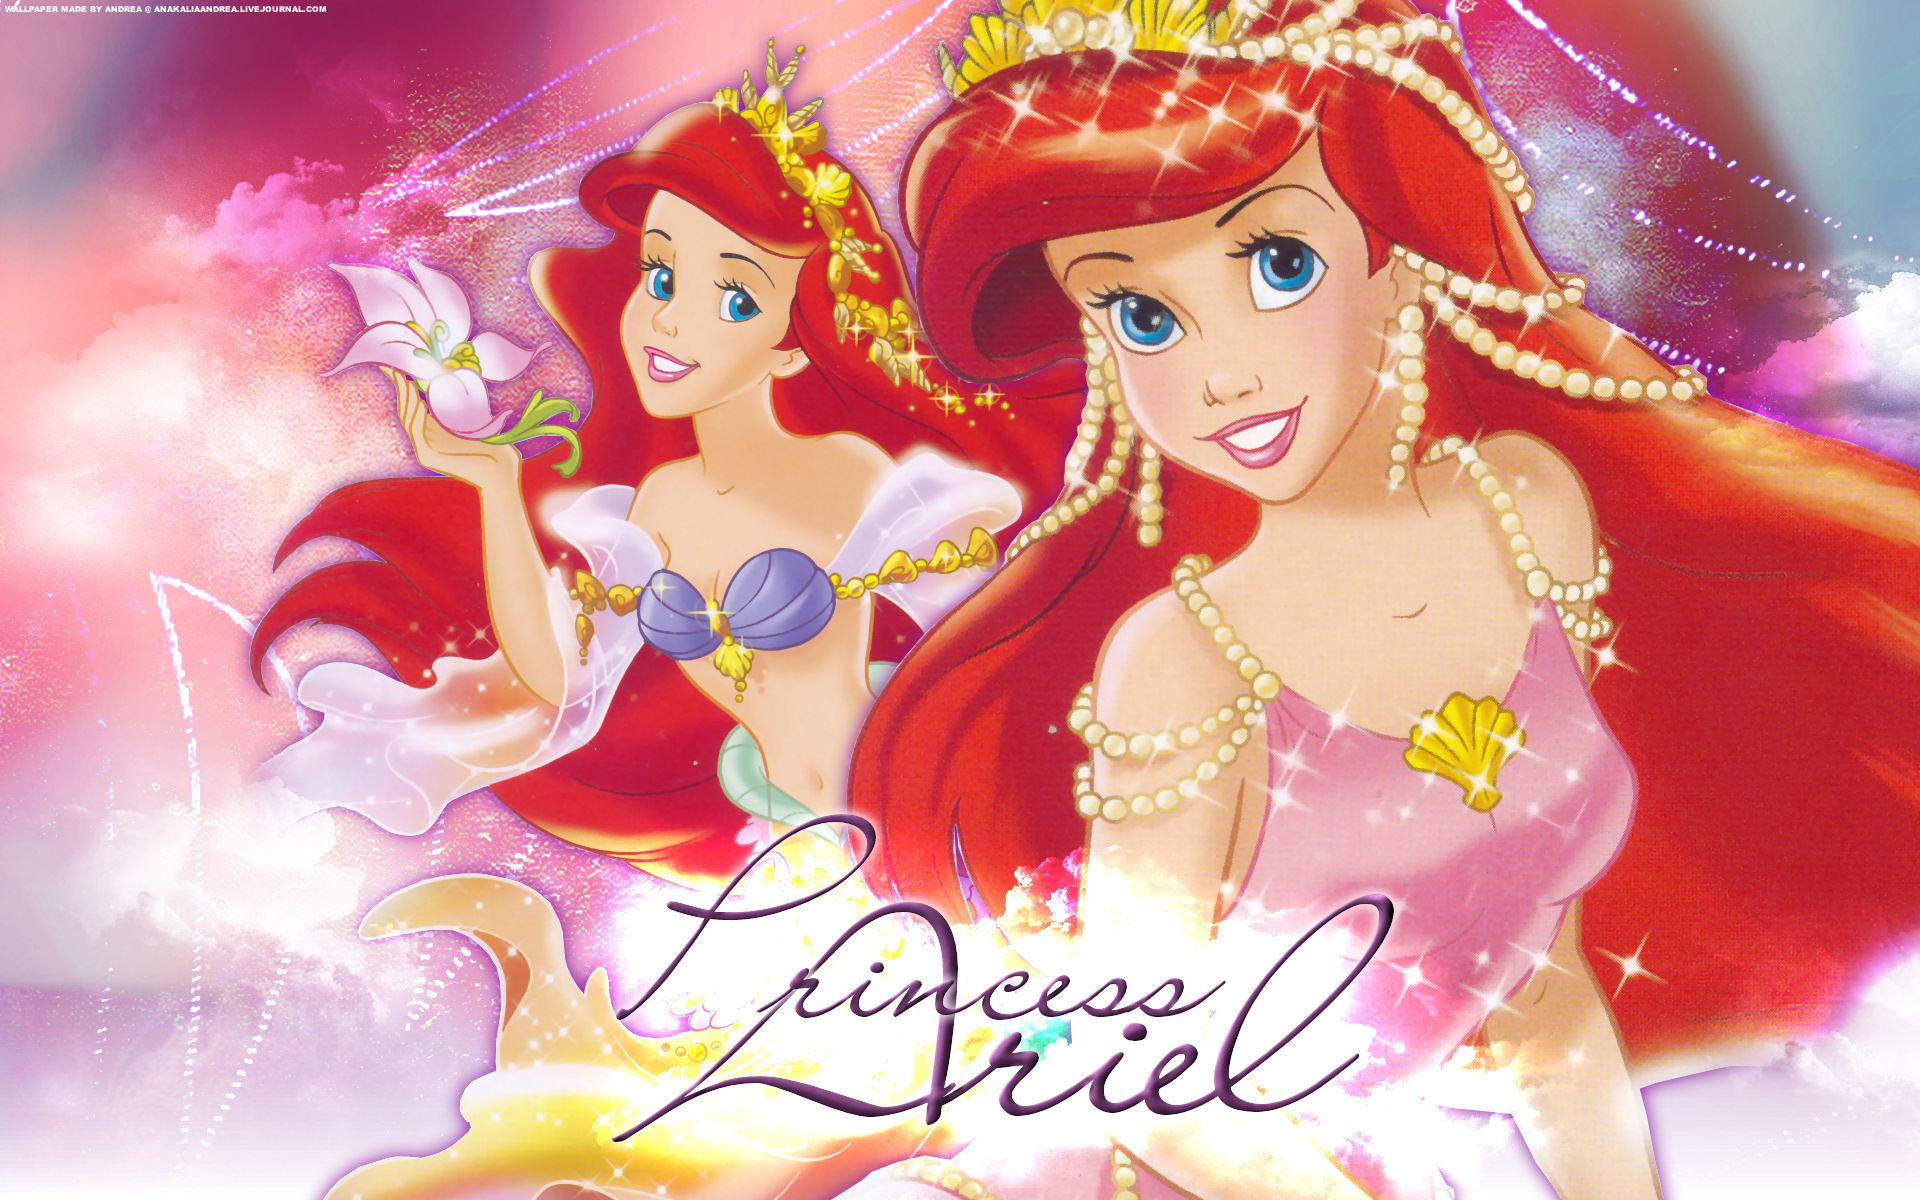 princess ariel classic disney wallpaper 4918019 fanpop